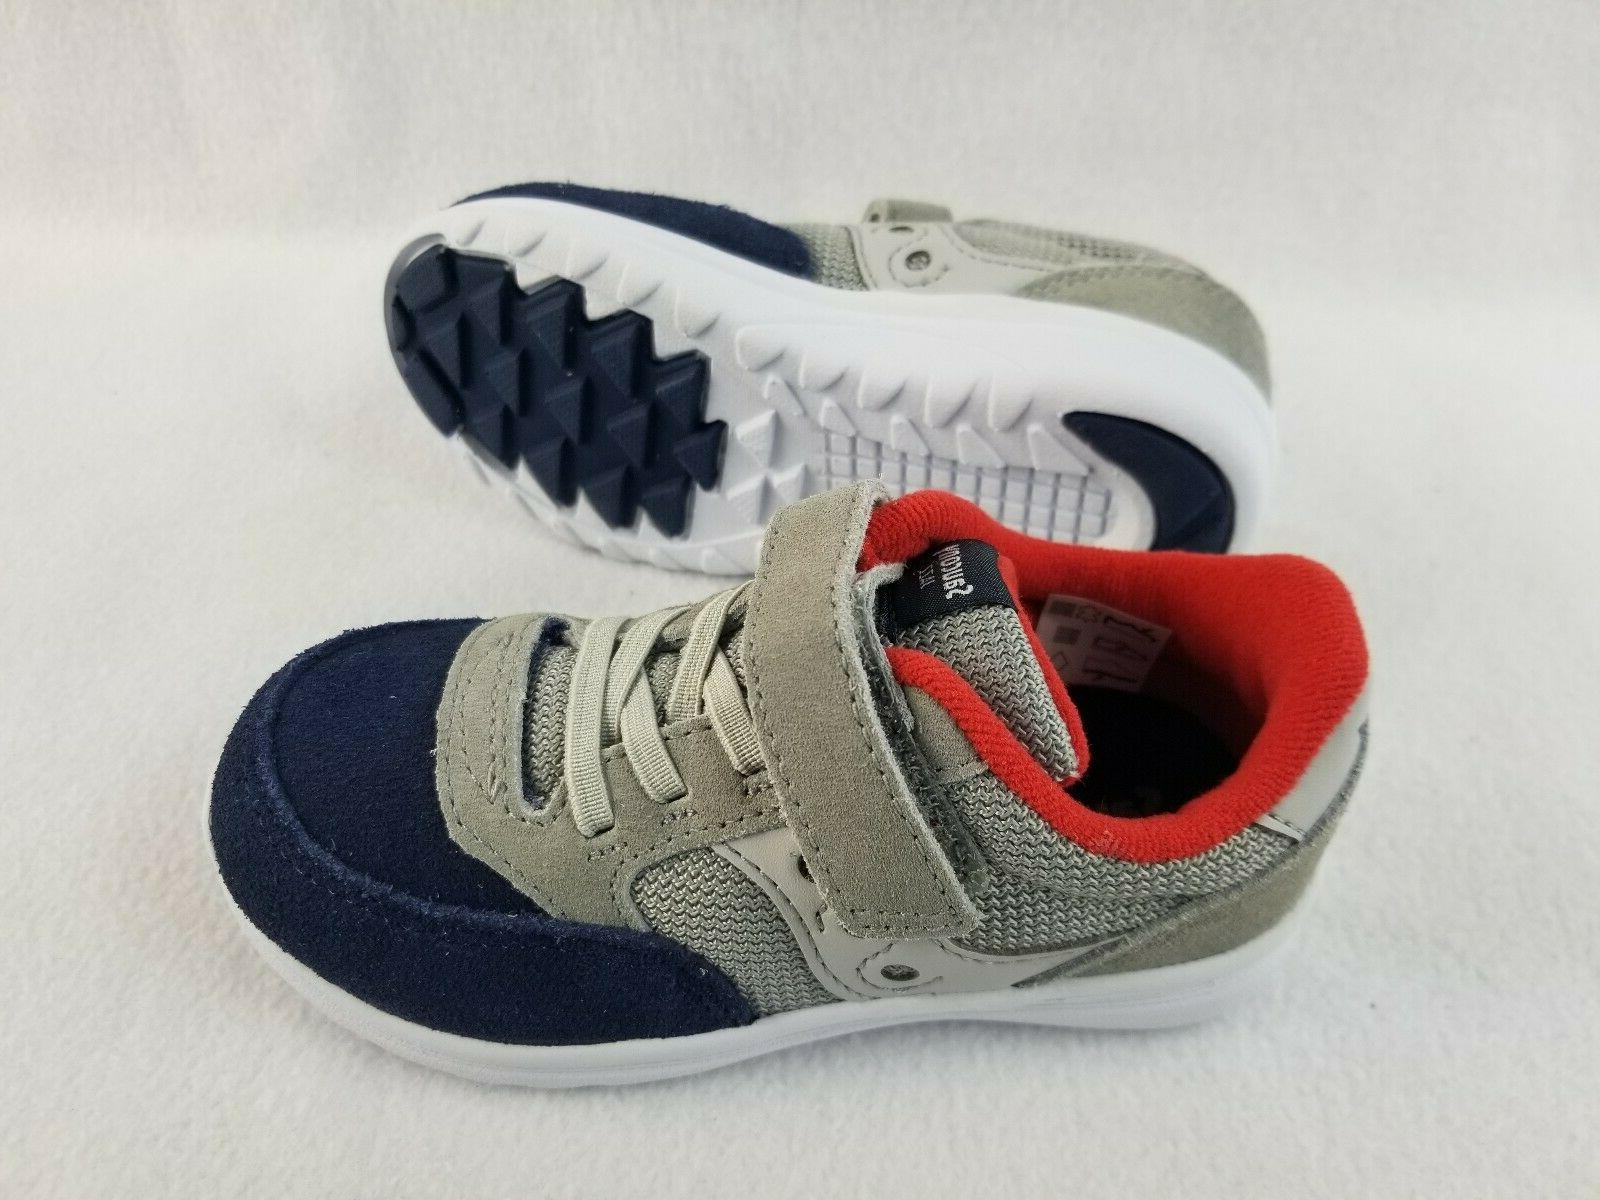 Saucony Shoes Boys Toddler Size 8.5 Wide Gray/Navy Sneakers